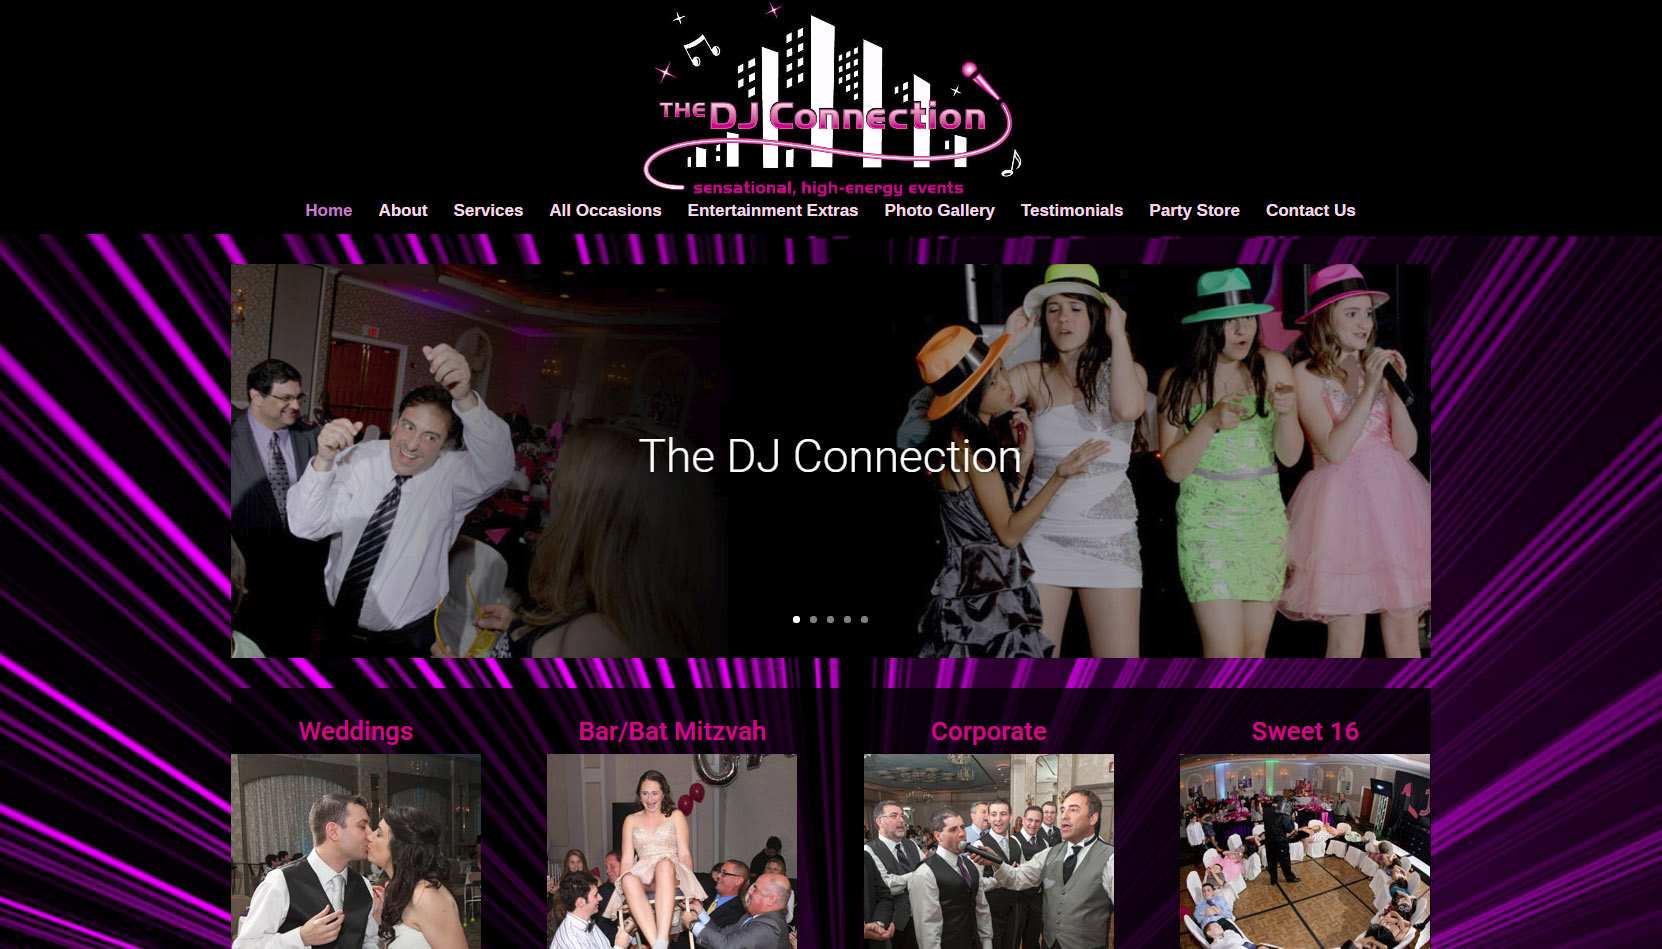 the dj connection website design by cvp